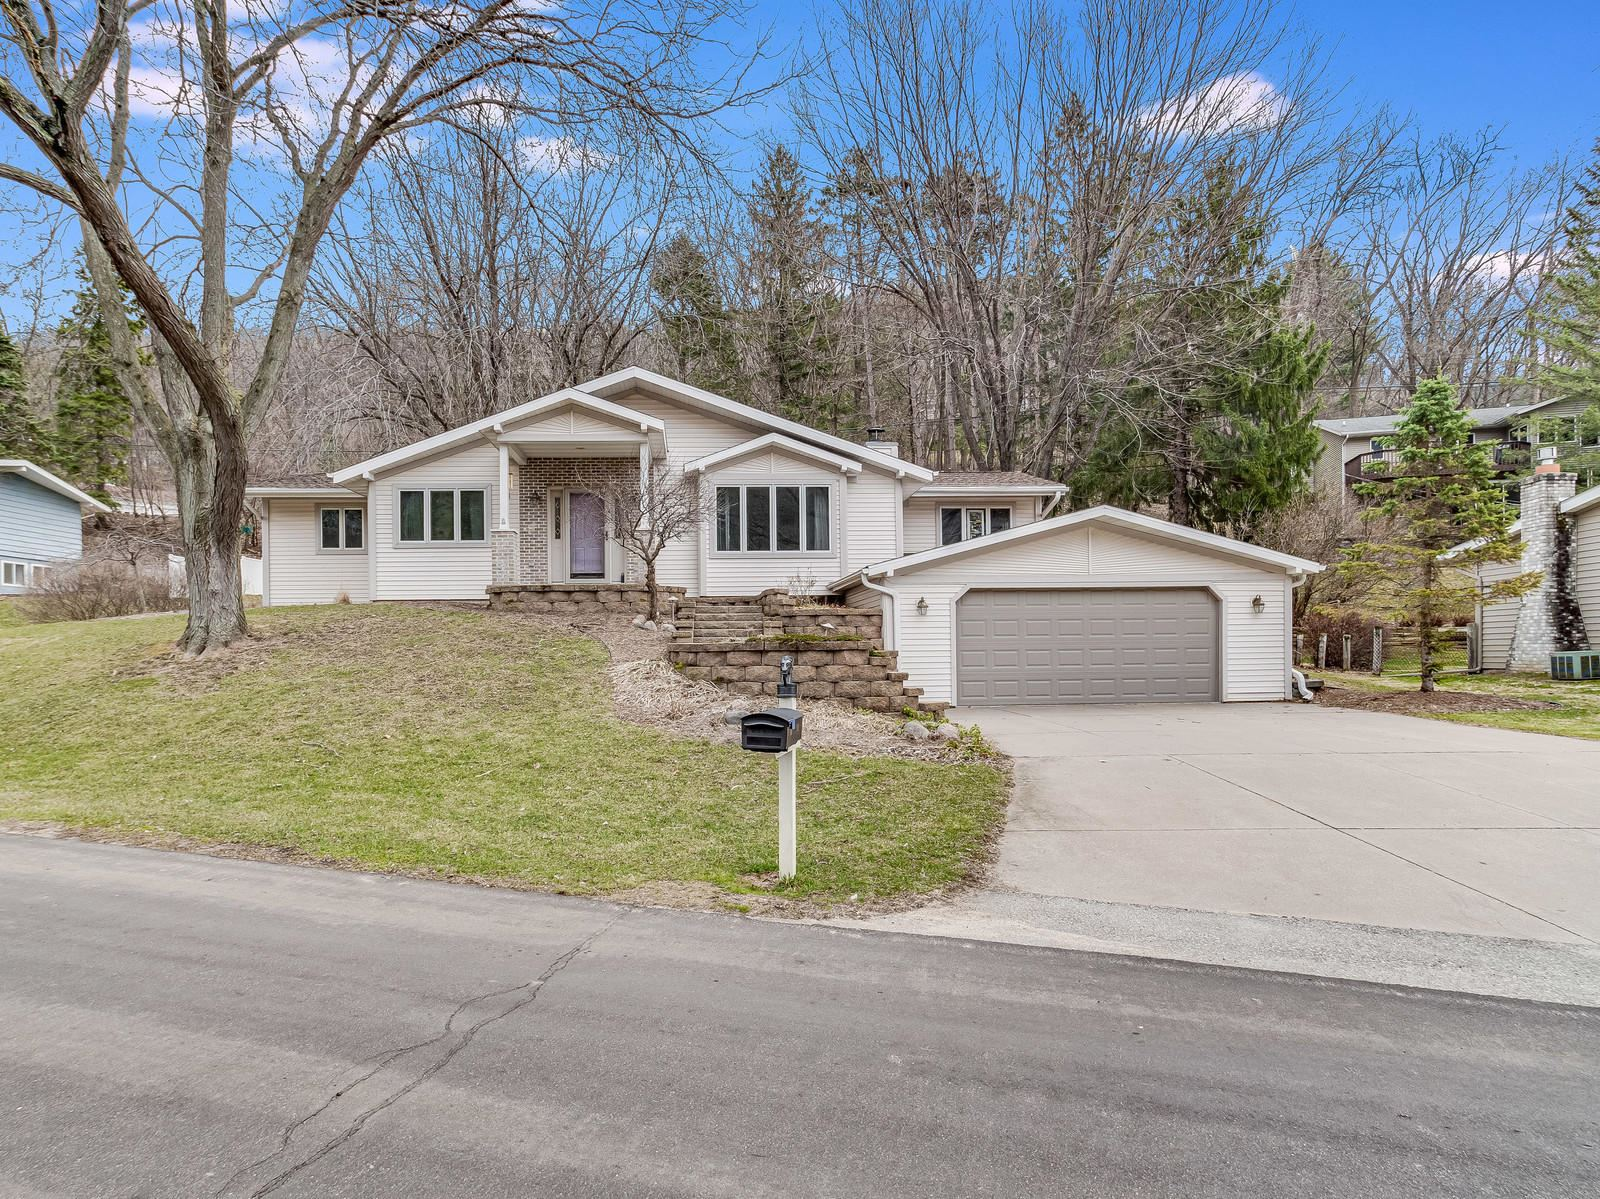 N2014 VALLEY RD, Shelby, WI 54601 - MLS#: 1684331